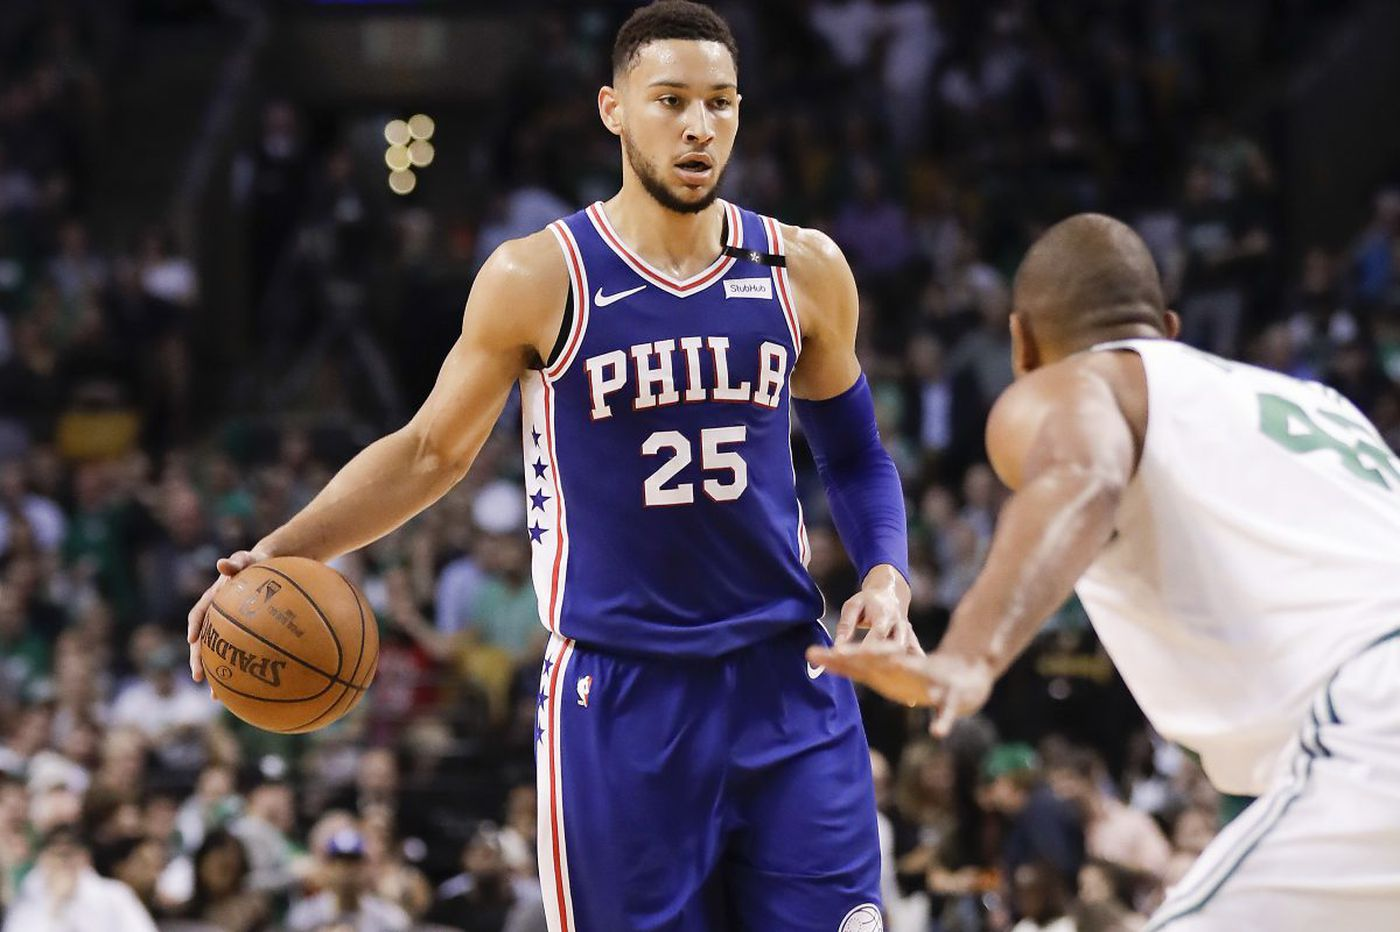 Sixers' Ben Simmons says his confidence is as high as ever after rough Game 2 vs. Celtics